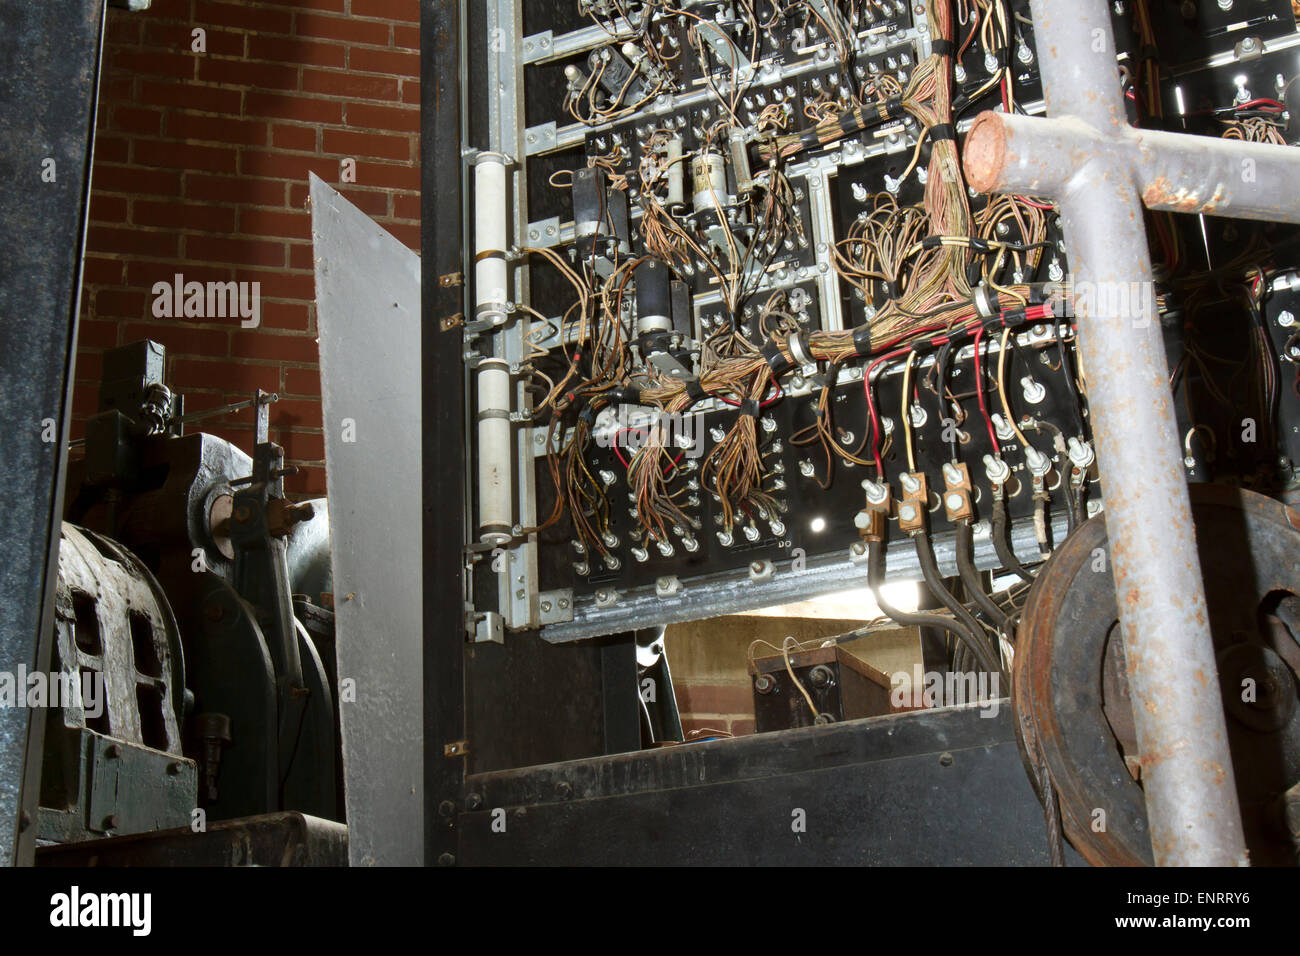 Old Electrical Panel on